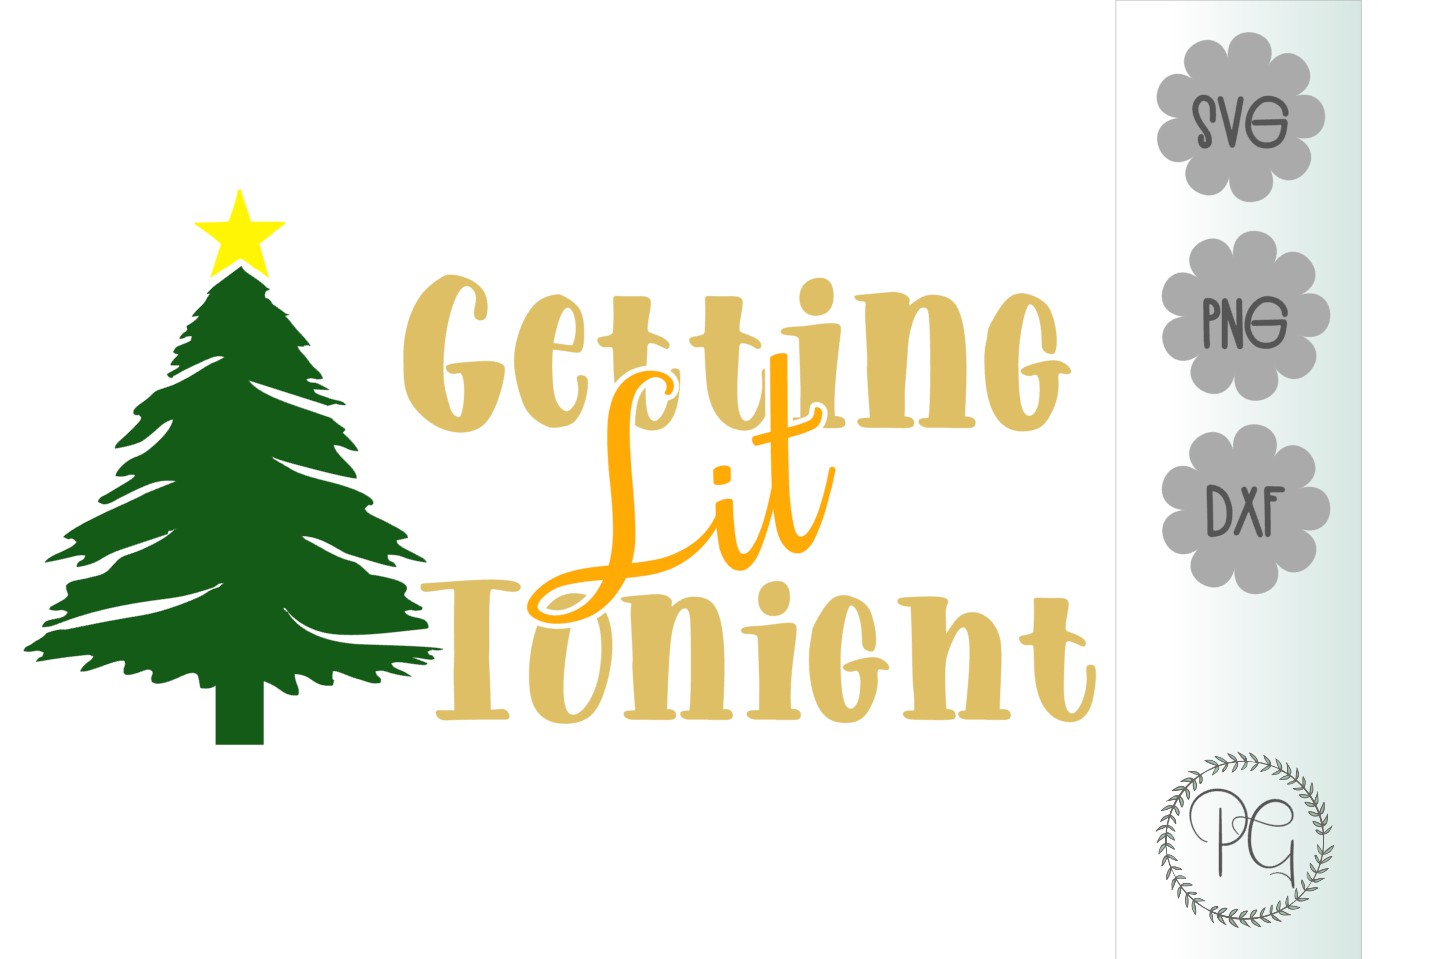 Getting Lit Tonight Christmas SVG PNG DXF example image 2